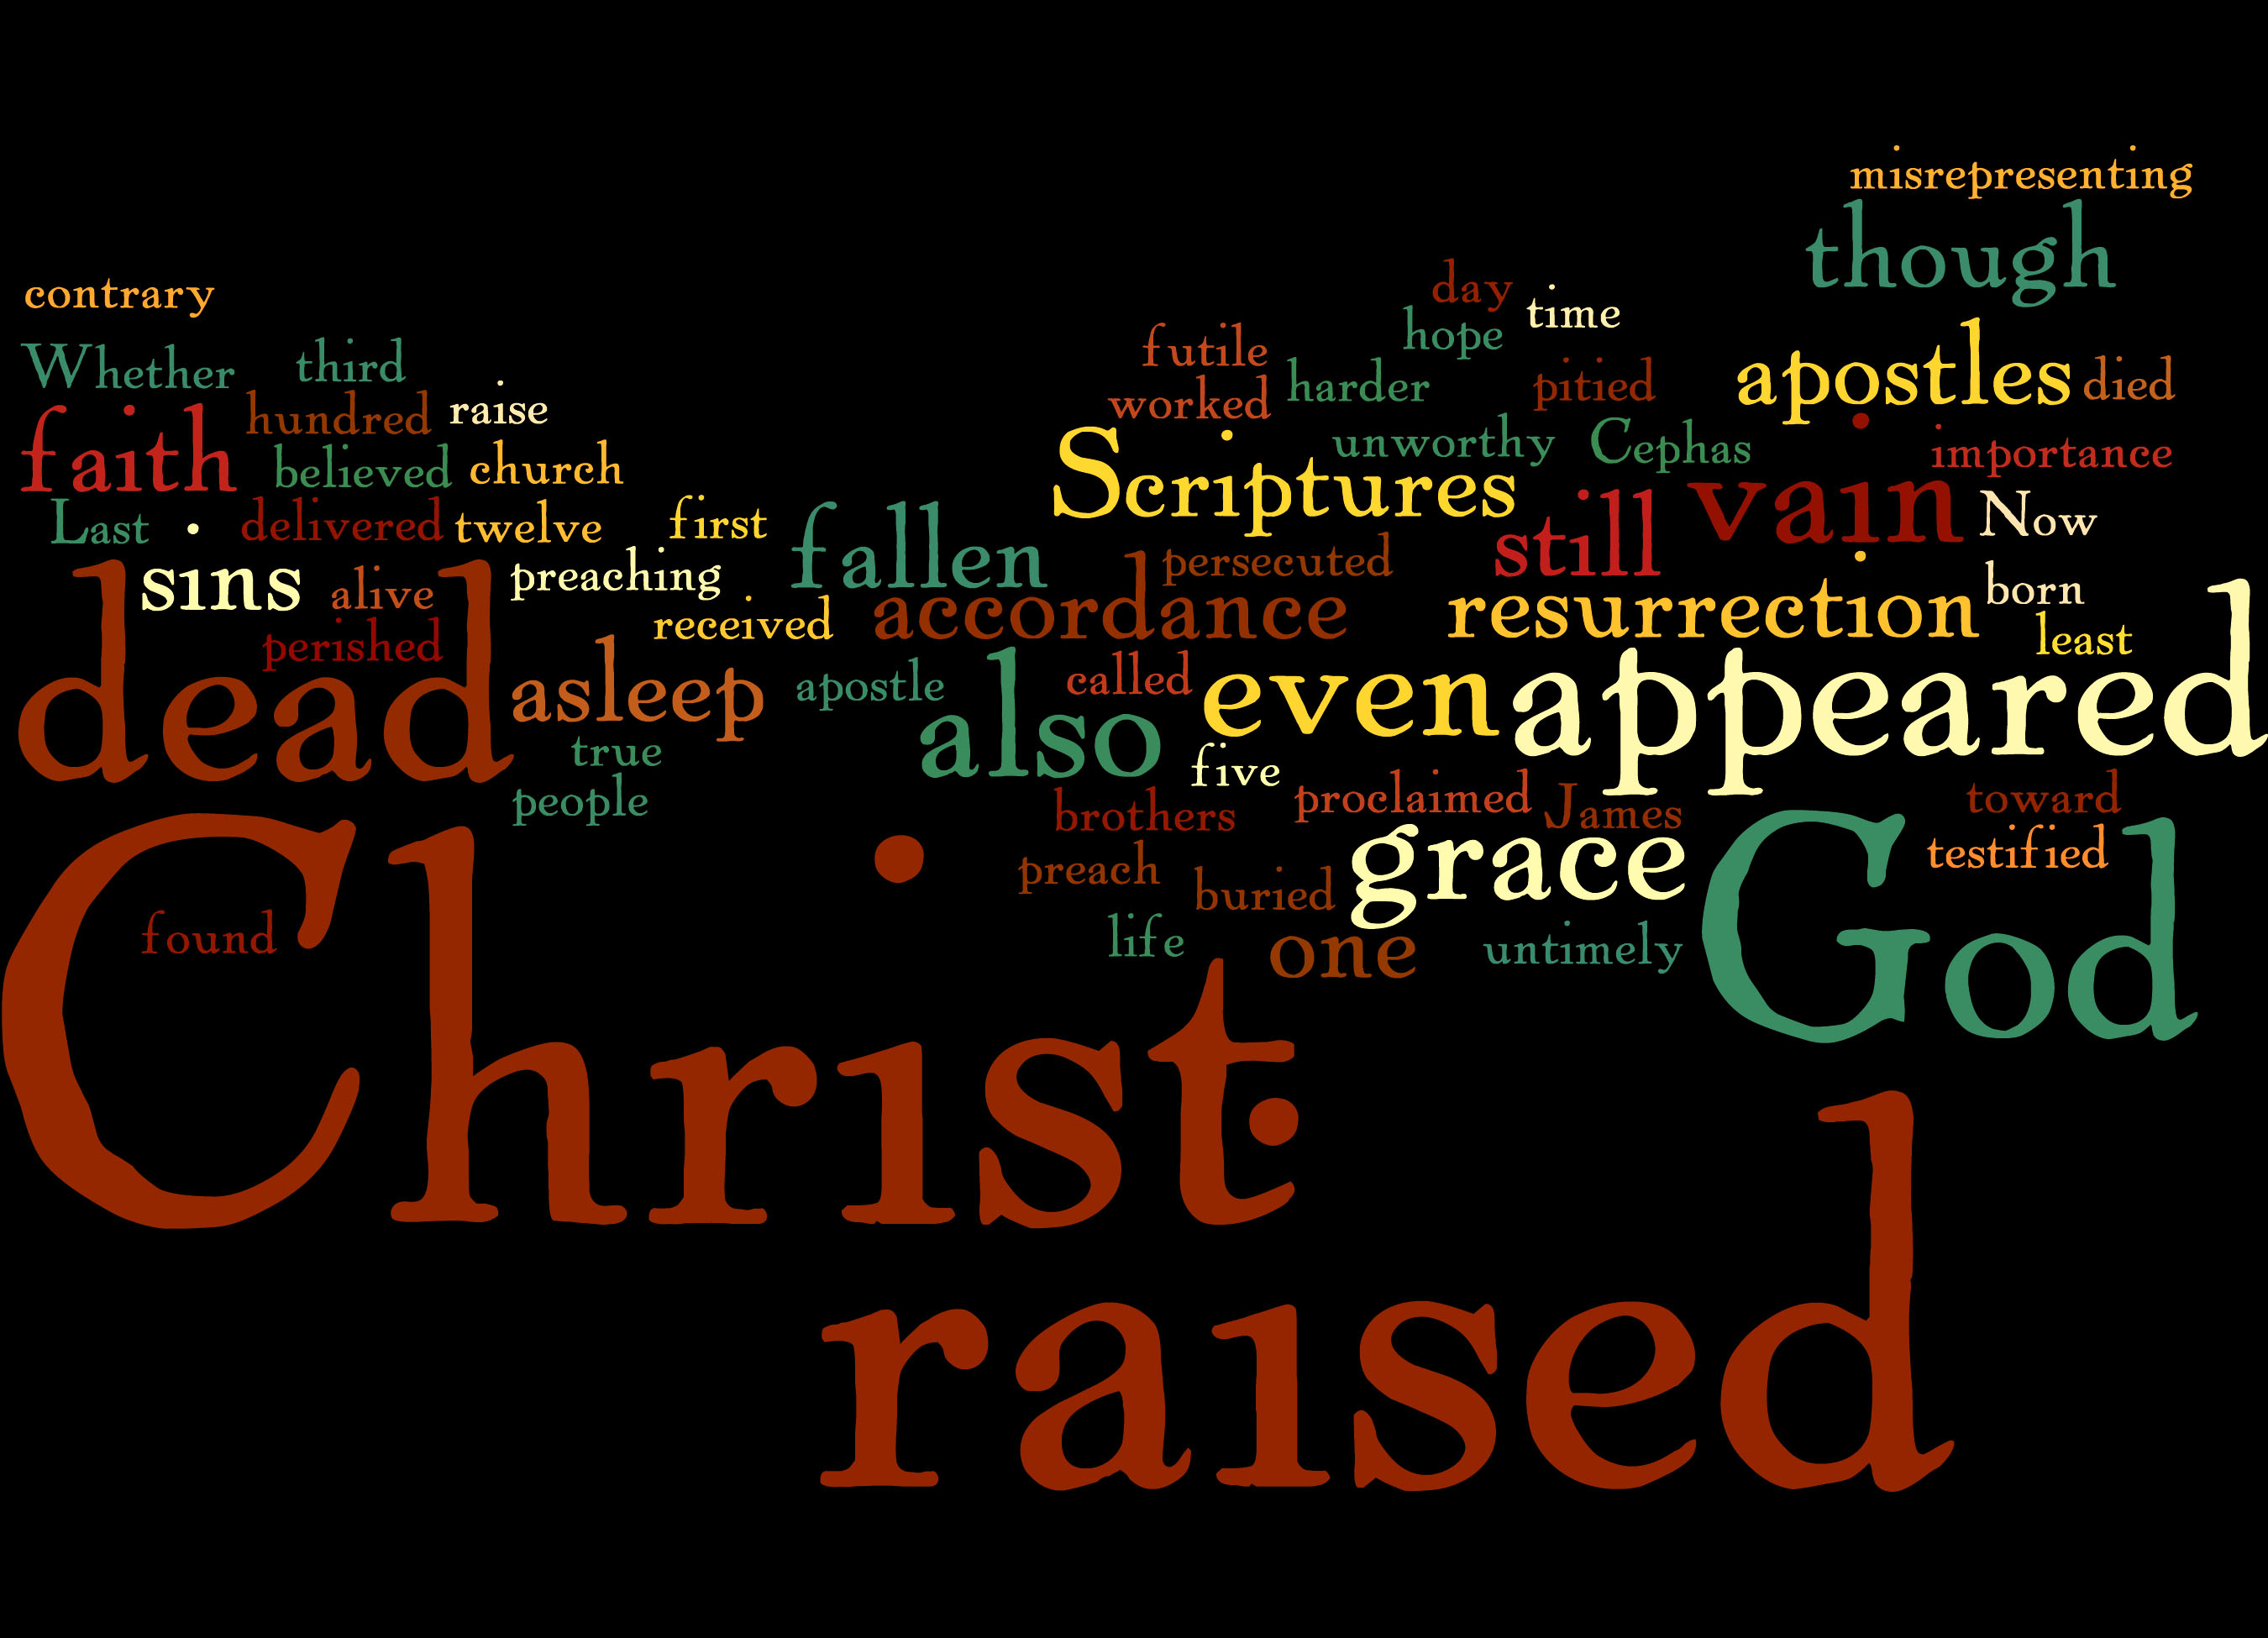 the importance of the resurrection of jesus christ on target